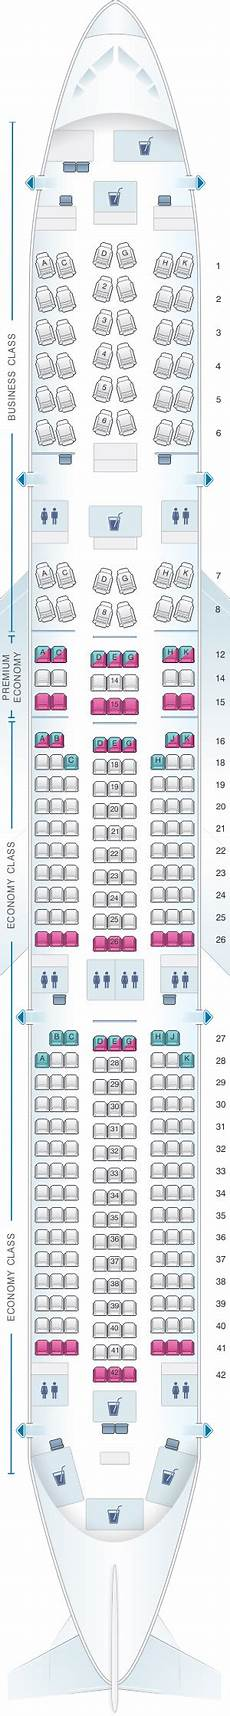 Airbus A350 900 Seating Chart Seat Map Lufthansa Airbus A350 900 Config 1 Seatmaestro